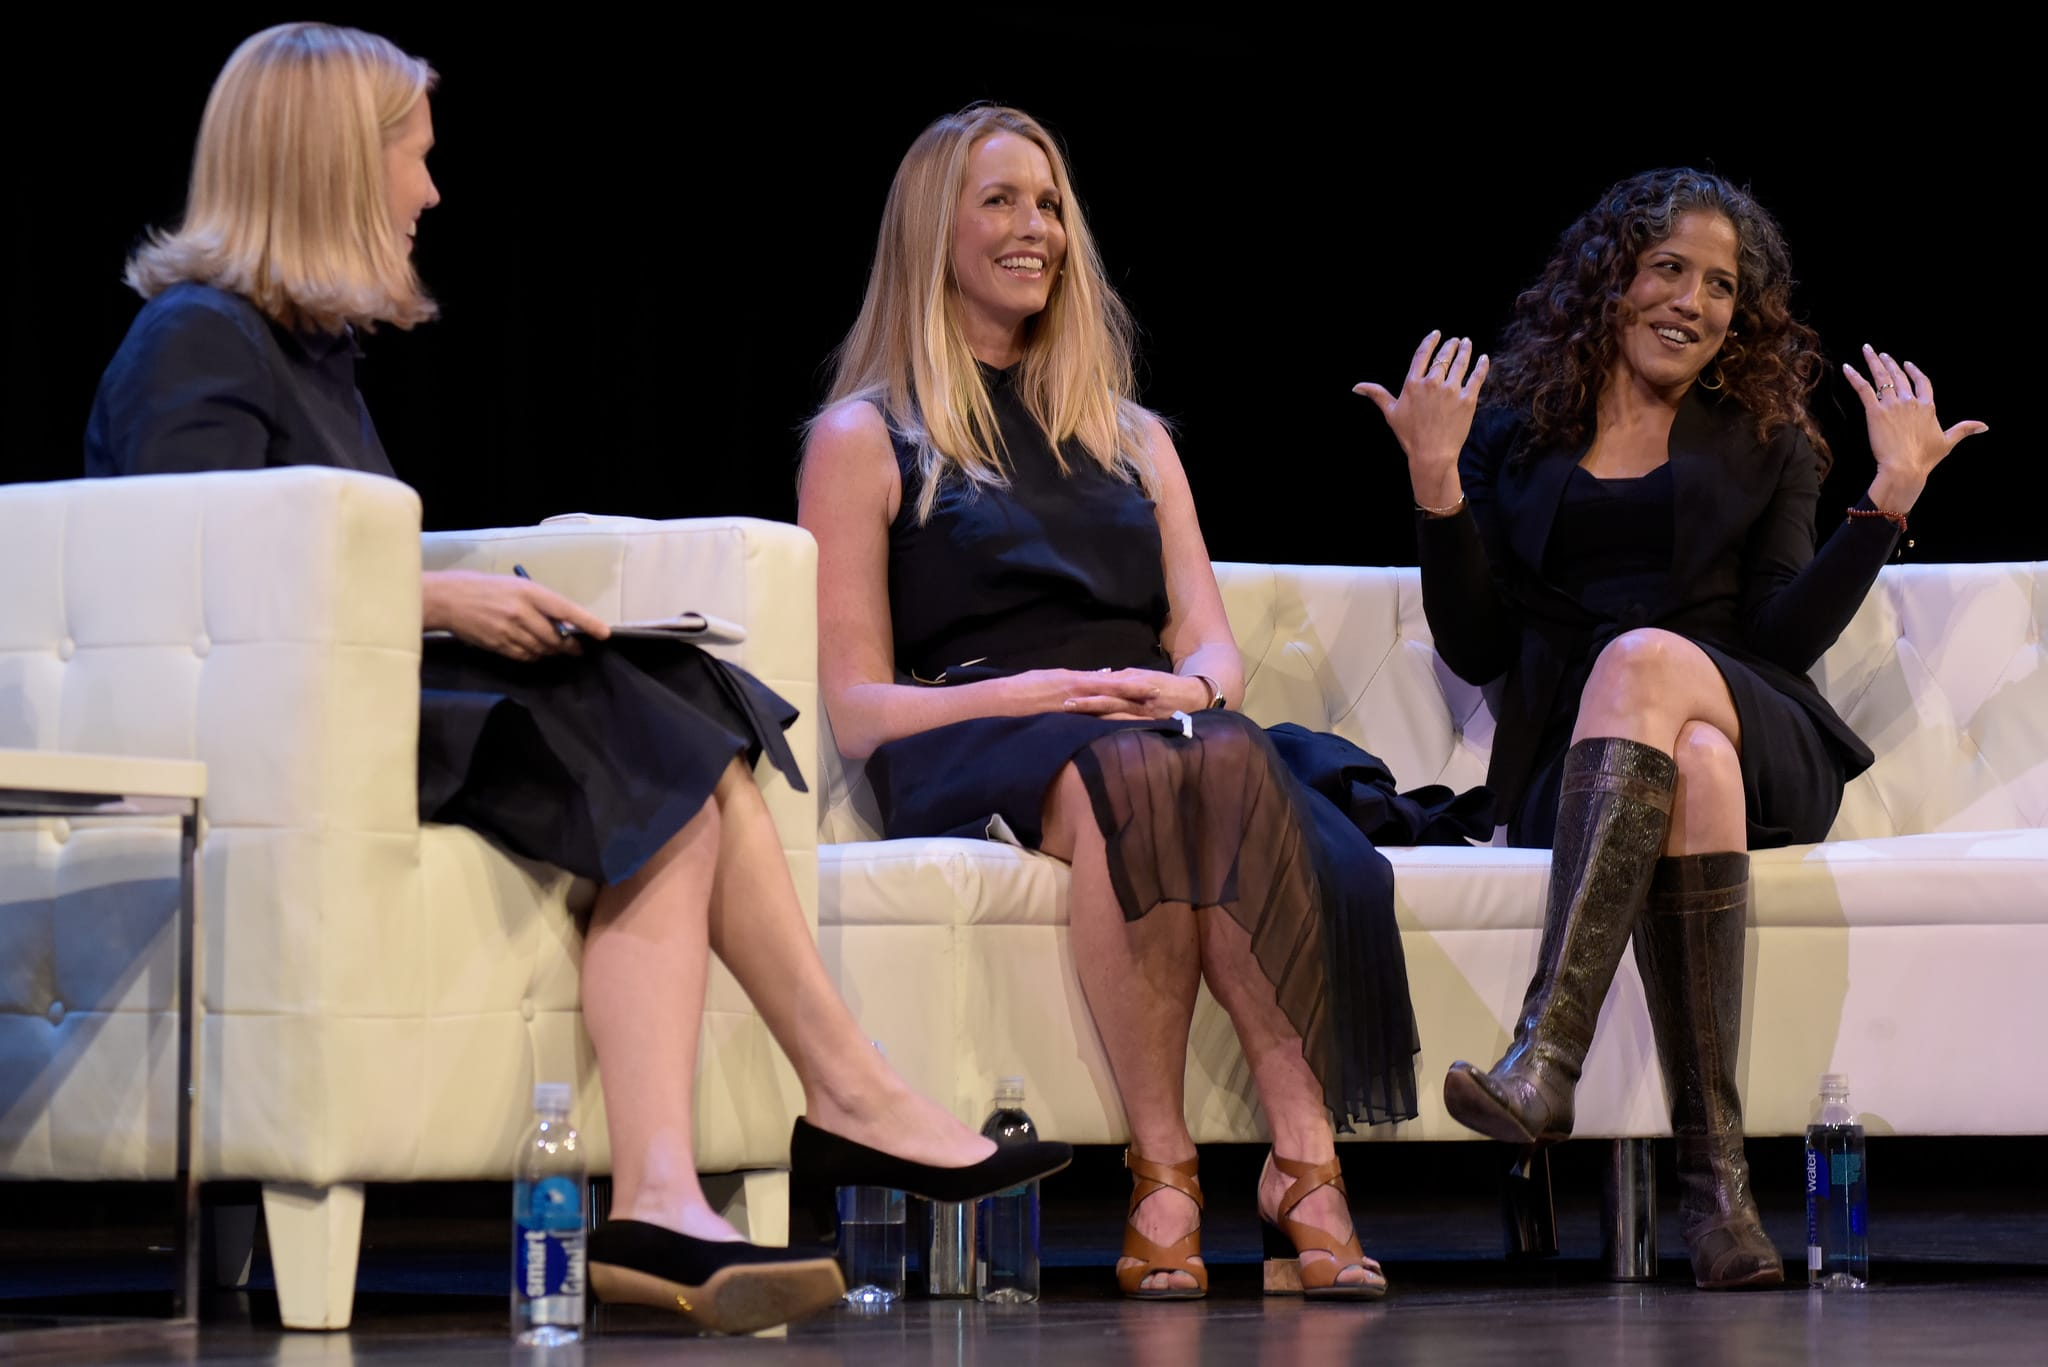 Laurene Powell Jobs (center) at the Female Founders Conference 2016 in San Francisco.